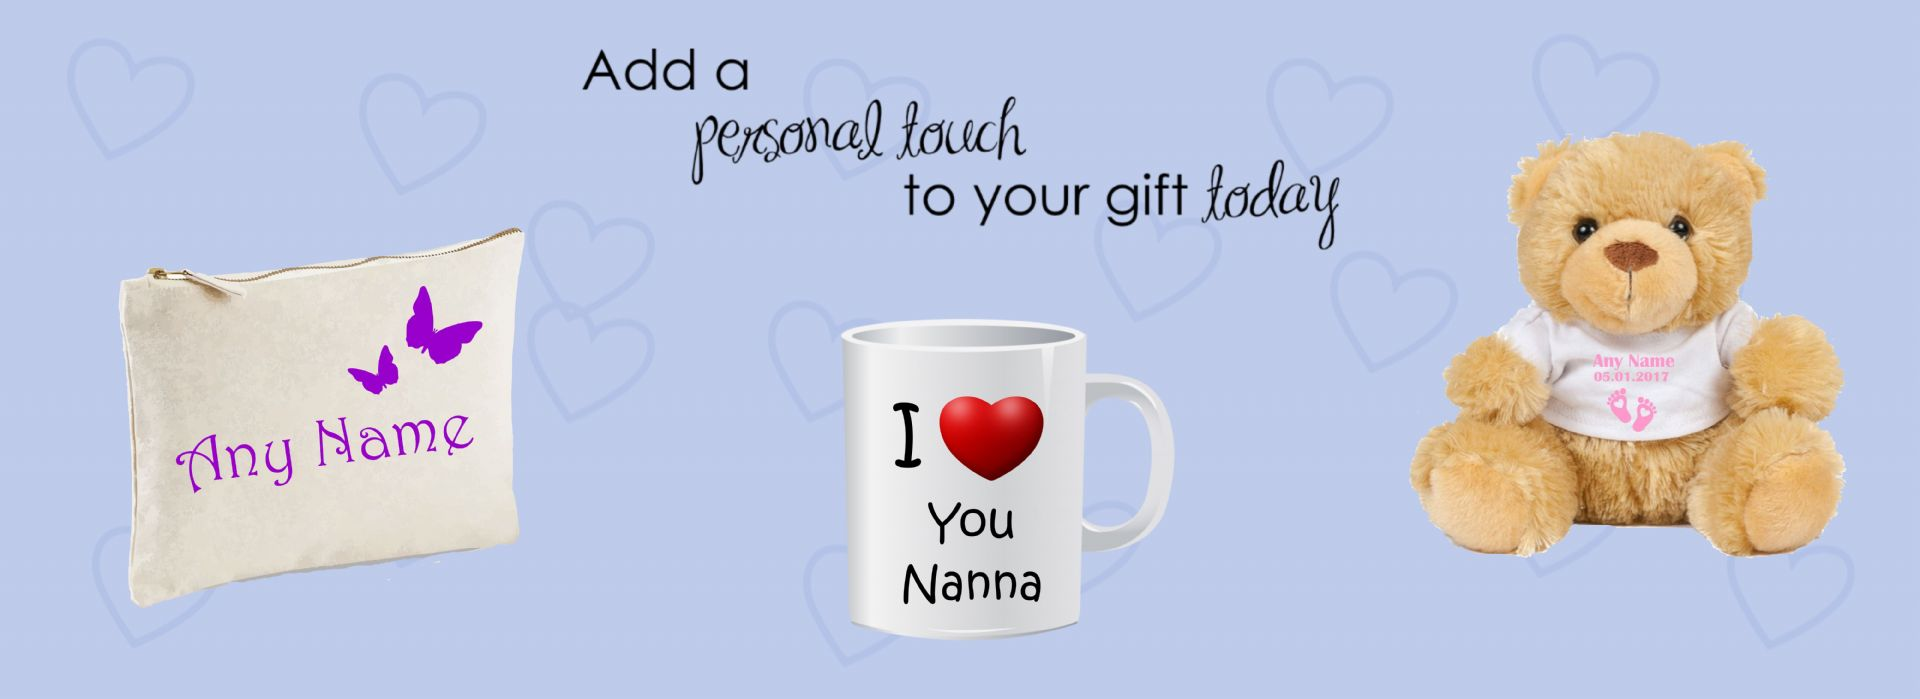 add a personal touch to your gift today